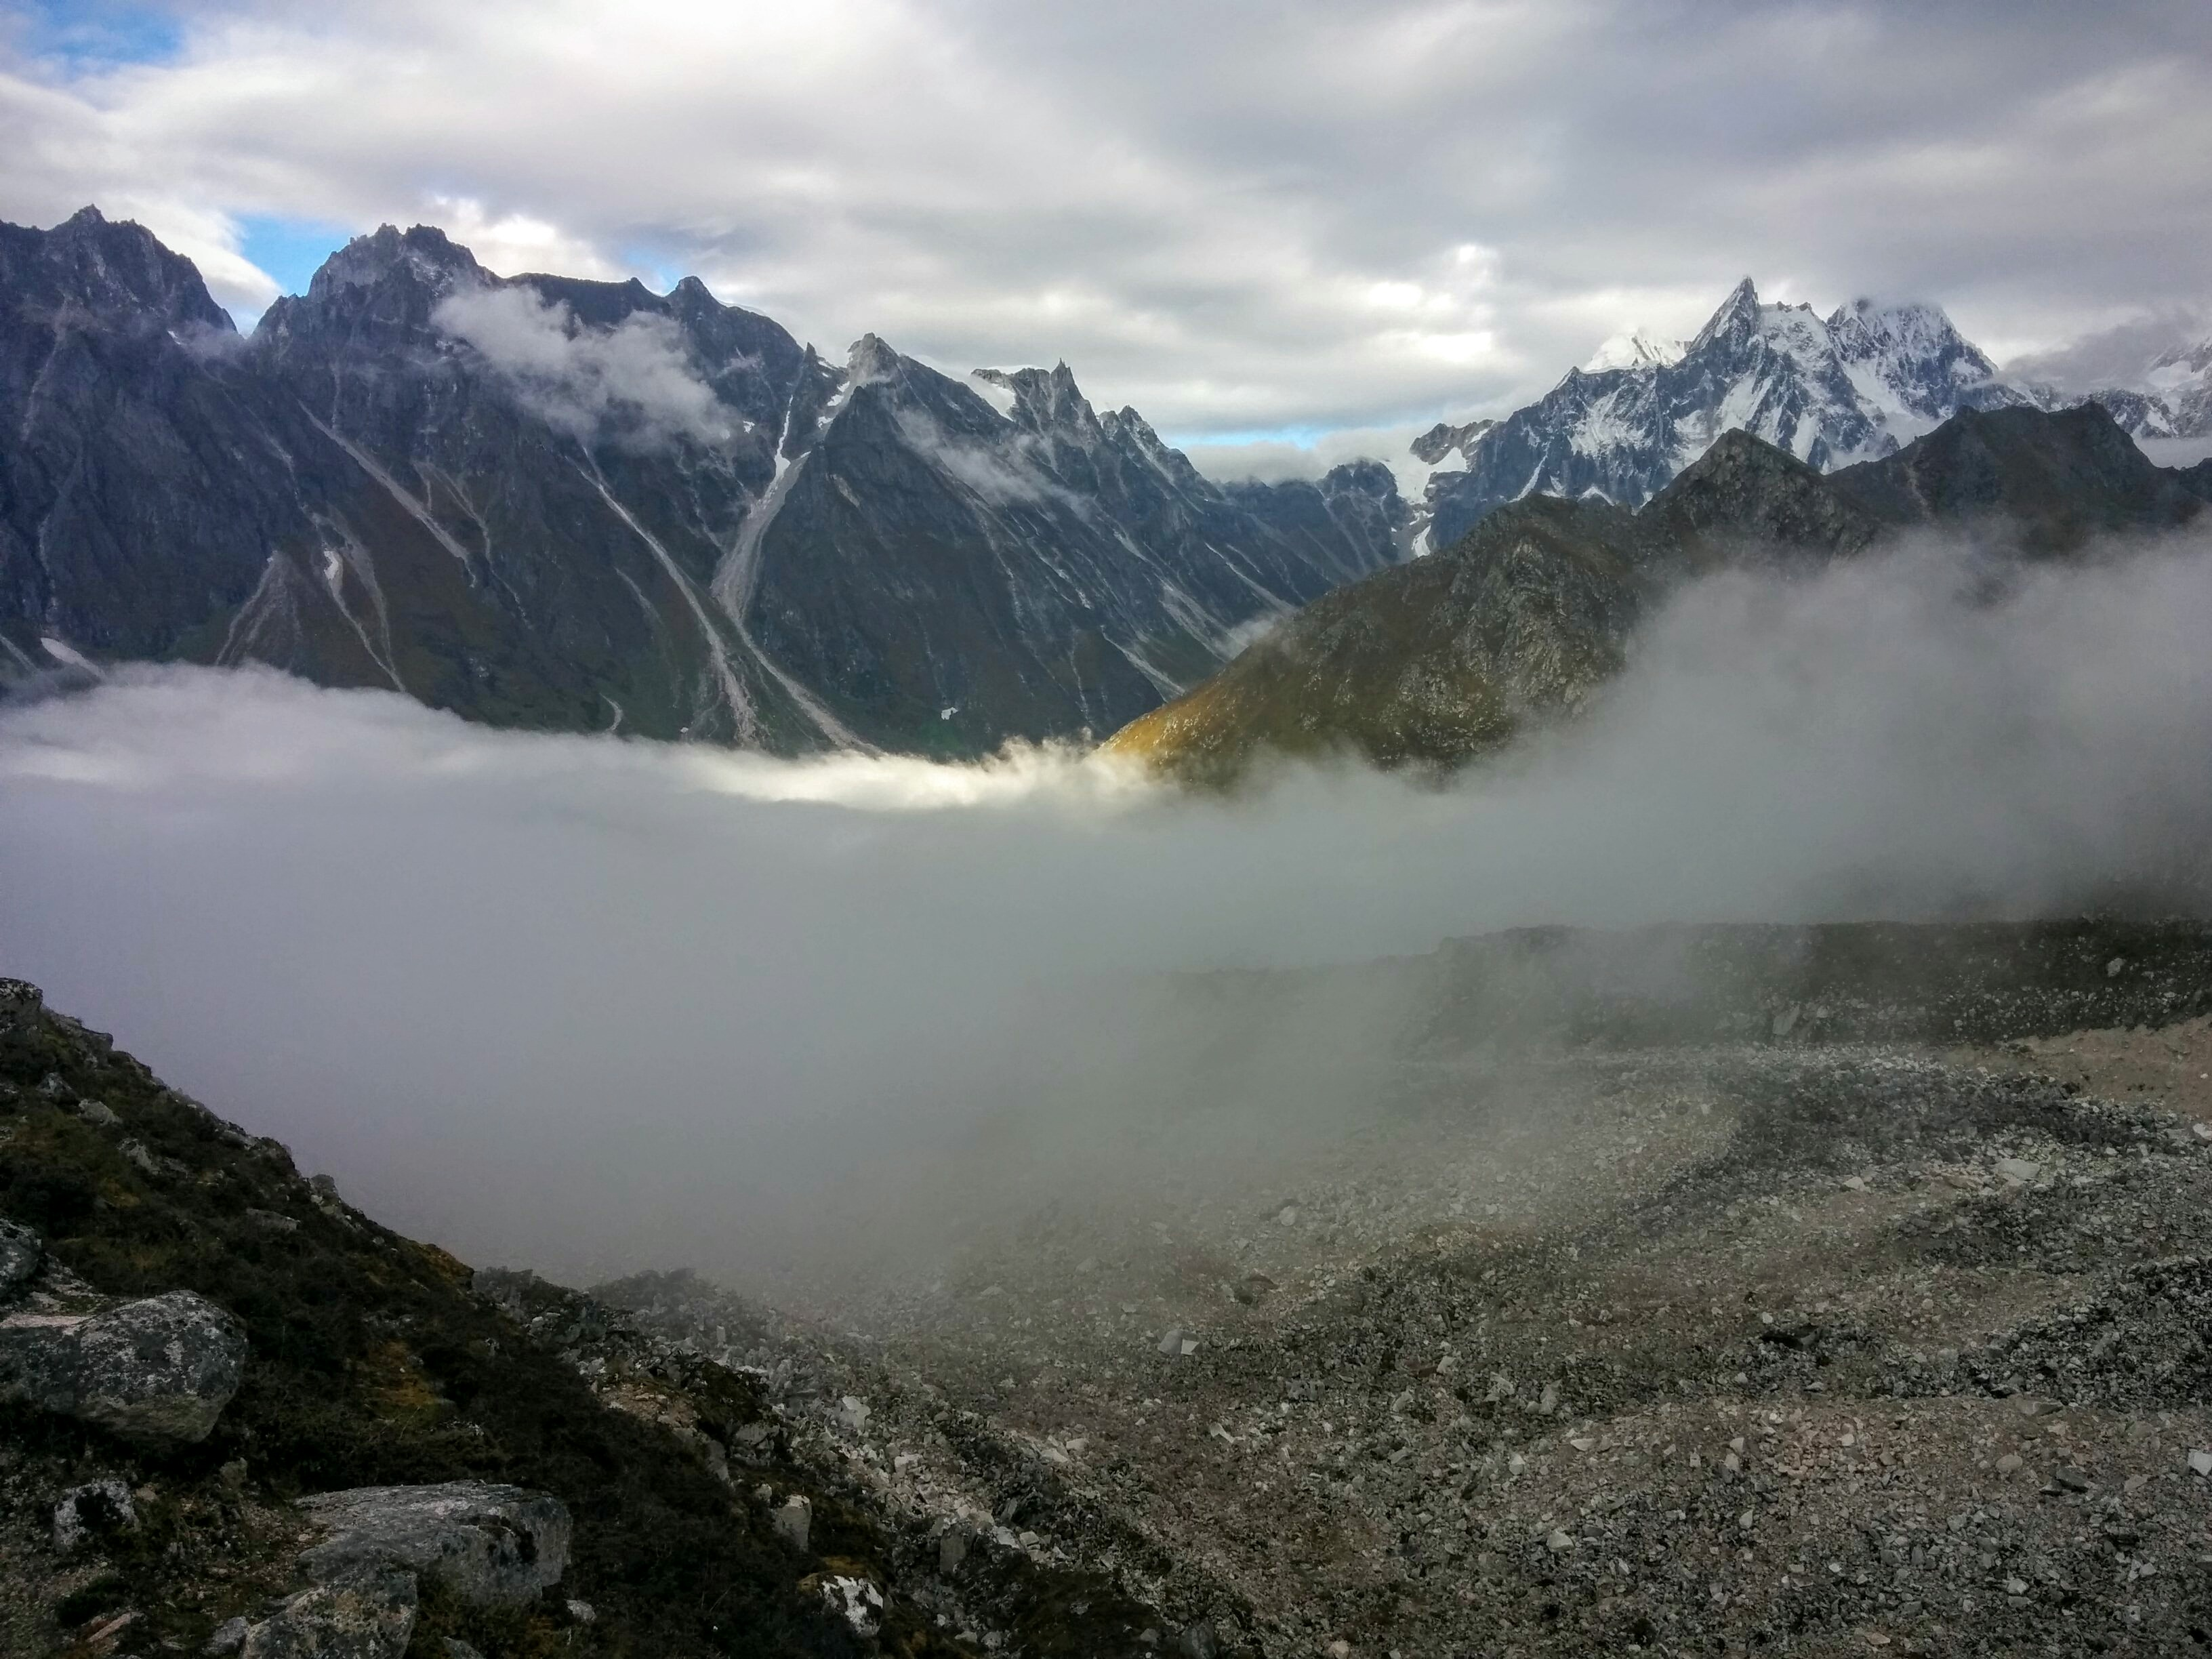 One of my views en route up Larke La as the clouds were rolling in.